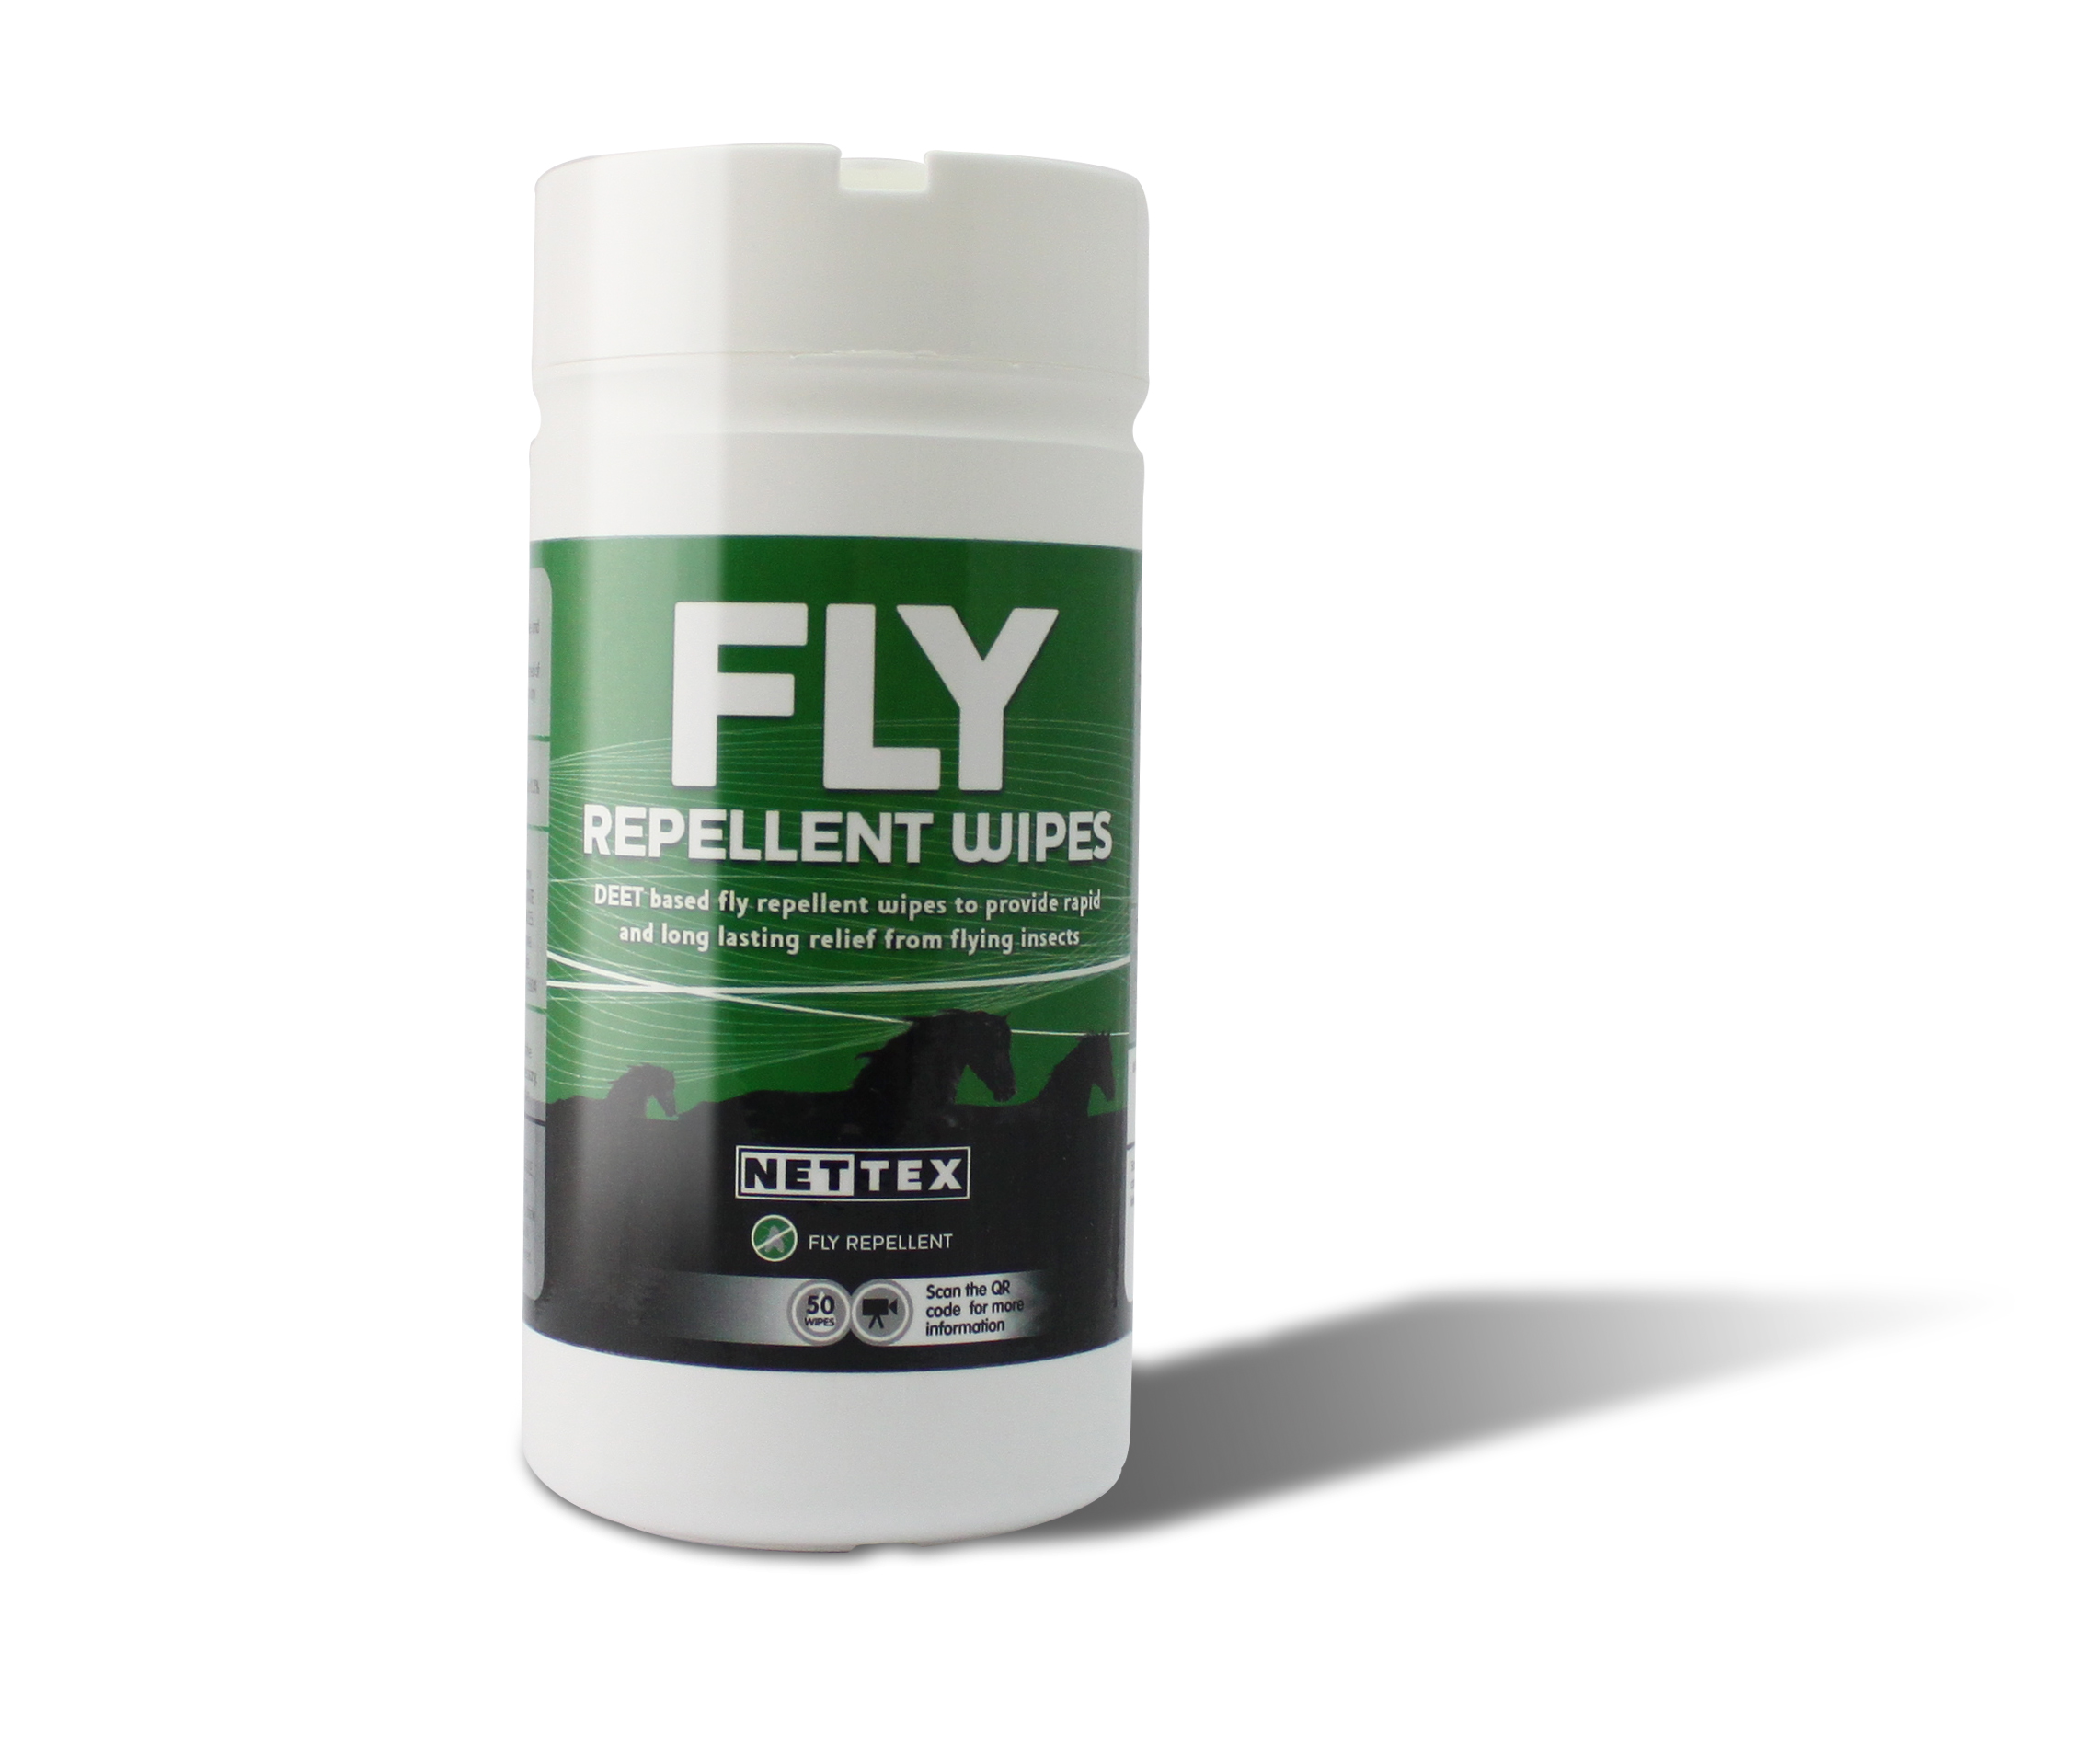 Nettex Fly Repellent Wipes, Pot of 50